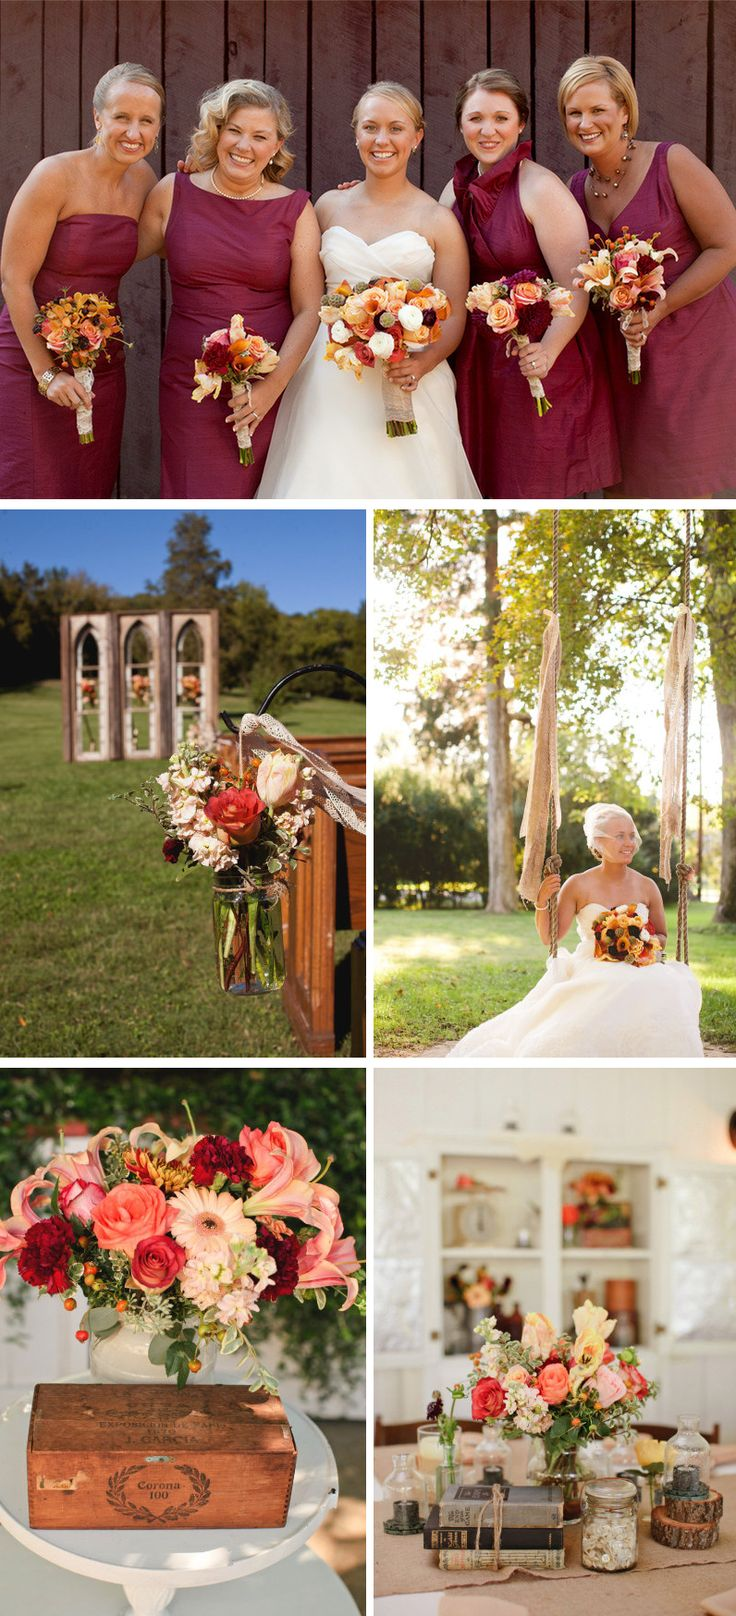 outdoor country western themed wedding colorful wedding flowers centerpieces maroon bridesmaids dresses